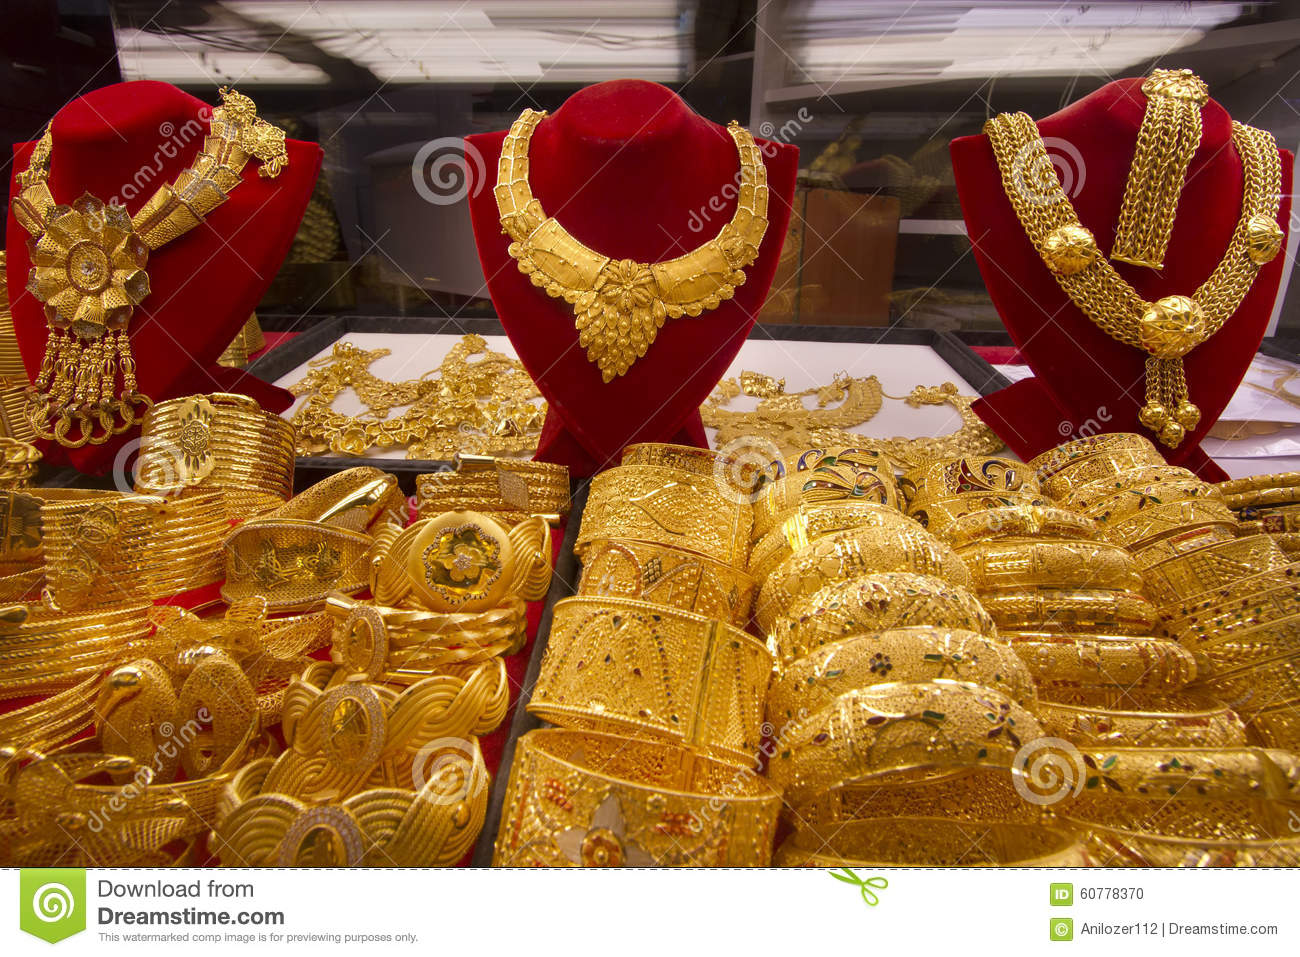 fixedw much large arab gold emirates in dubai so the d souk united